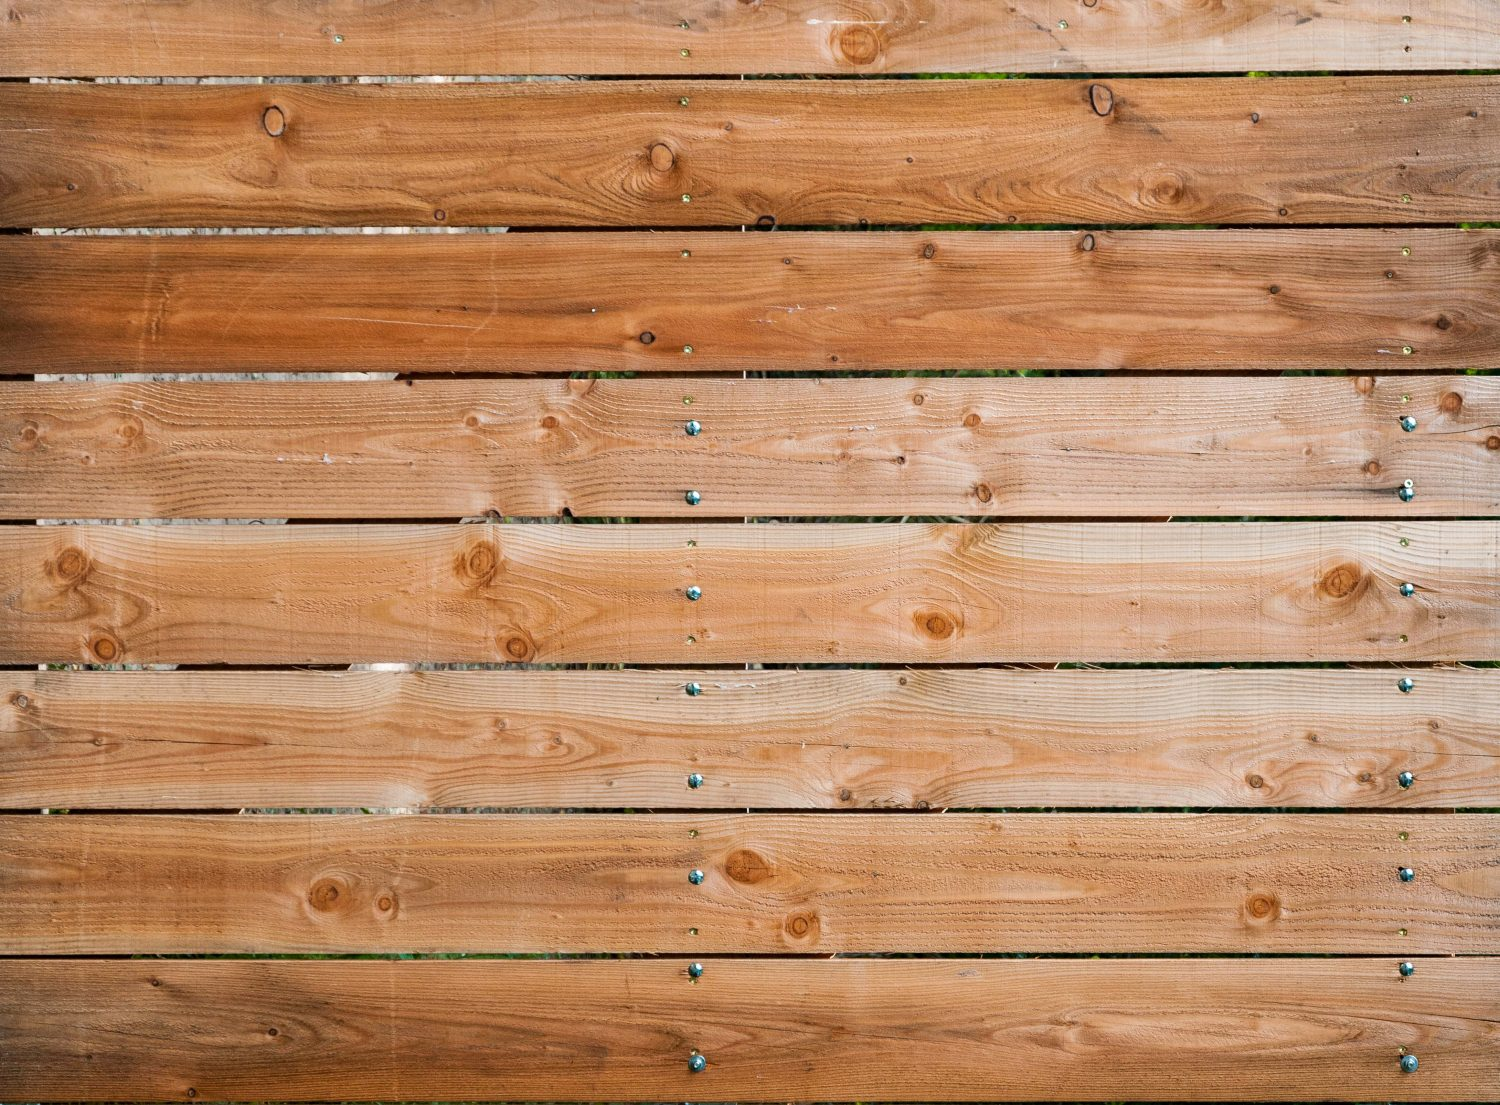 Timber wood wall nails background stock photo